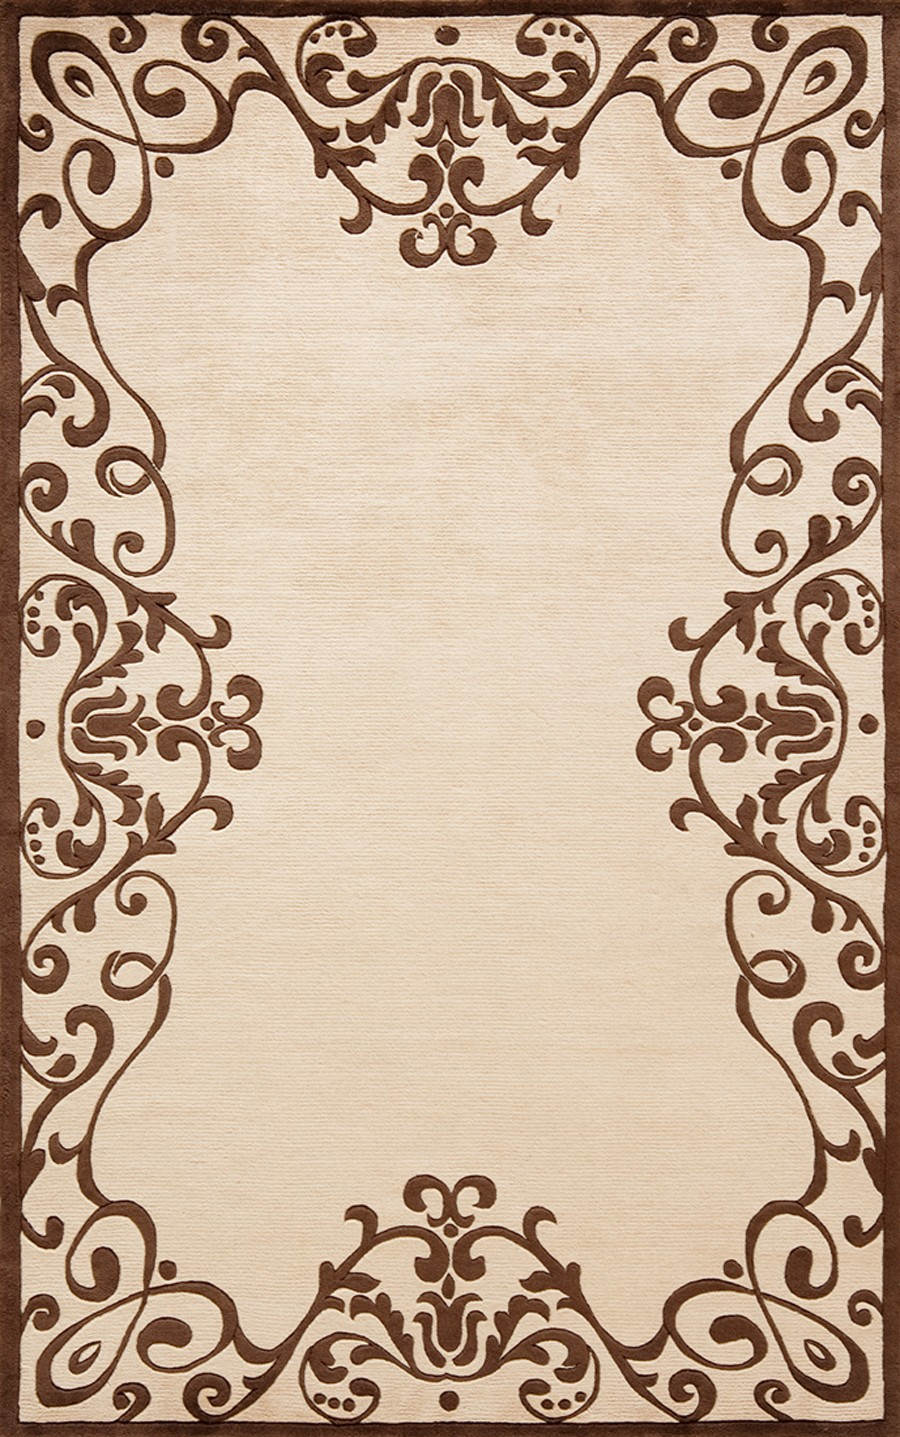 lovely Harmony Brown HA 26 Rug with floral pattern for floor decor ideas